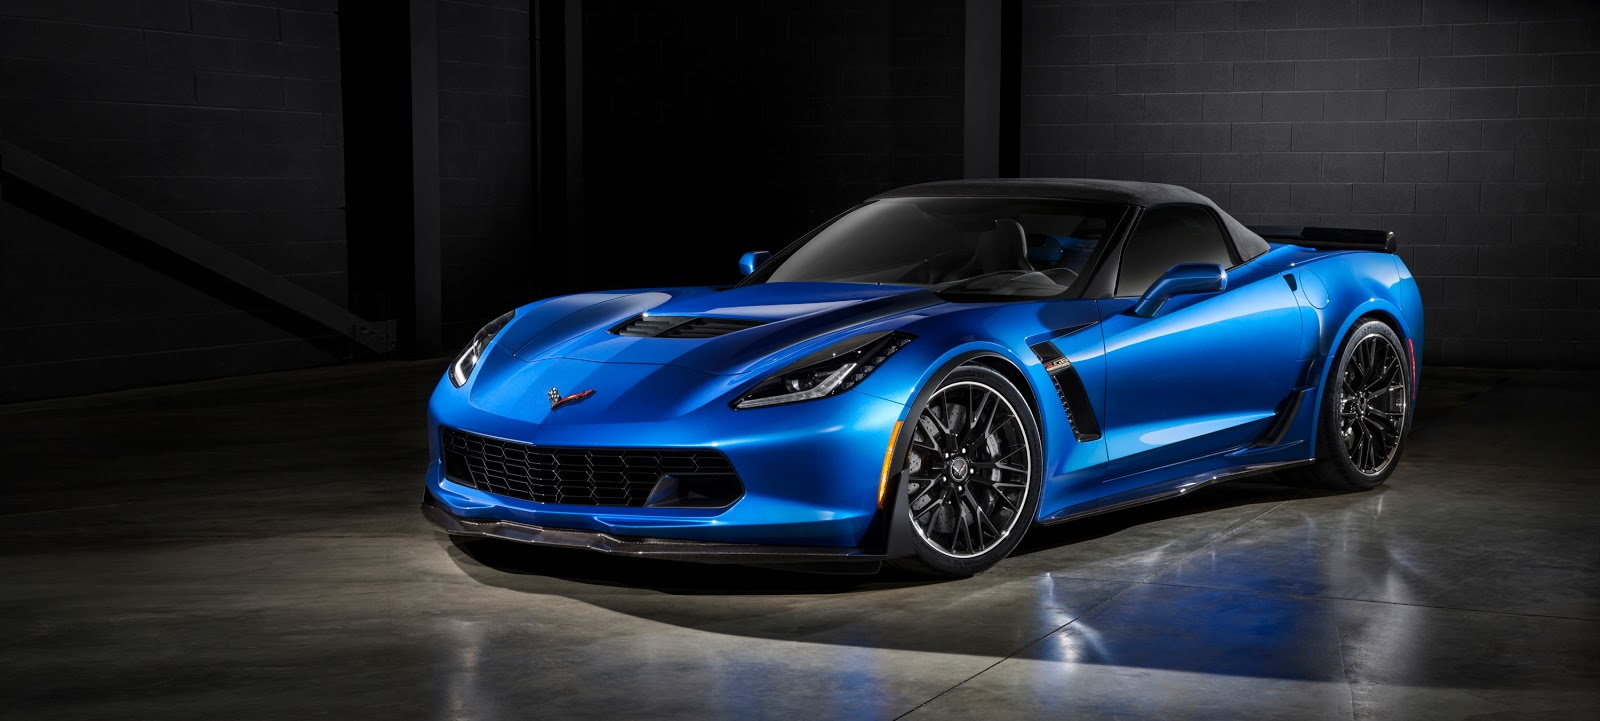 The all-new, 2015 Corvette Z06 will be one of the most capable convertibles on the market, offering at least 625 hp, 0-60 acceleration in under 3.5 seconds, true aerodynamic downforce, and available performance hardware including carbon-ceramic brakes and Michelin Pilot Sport Cup tires.  © General Motors